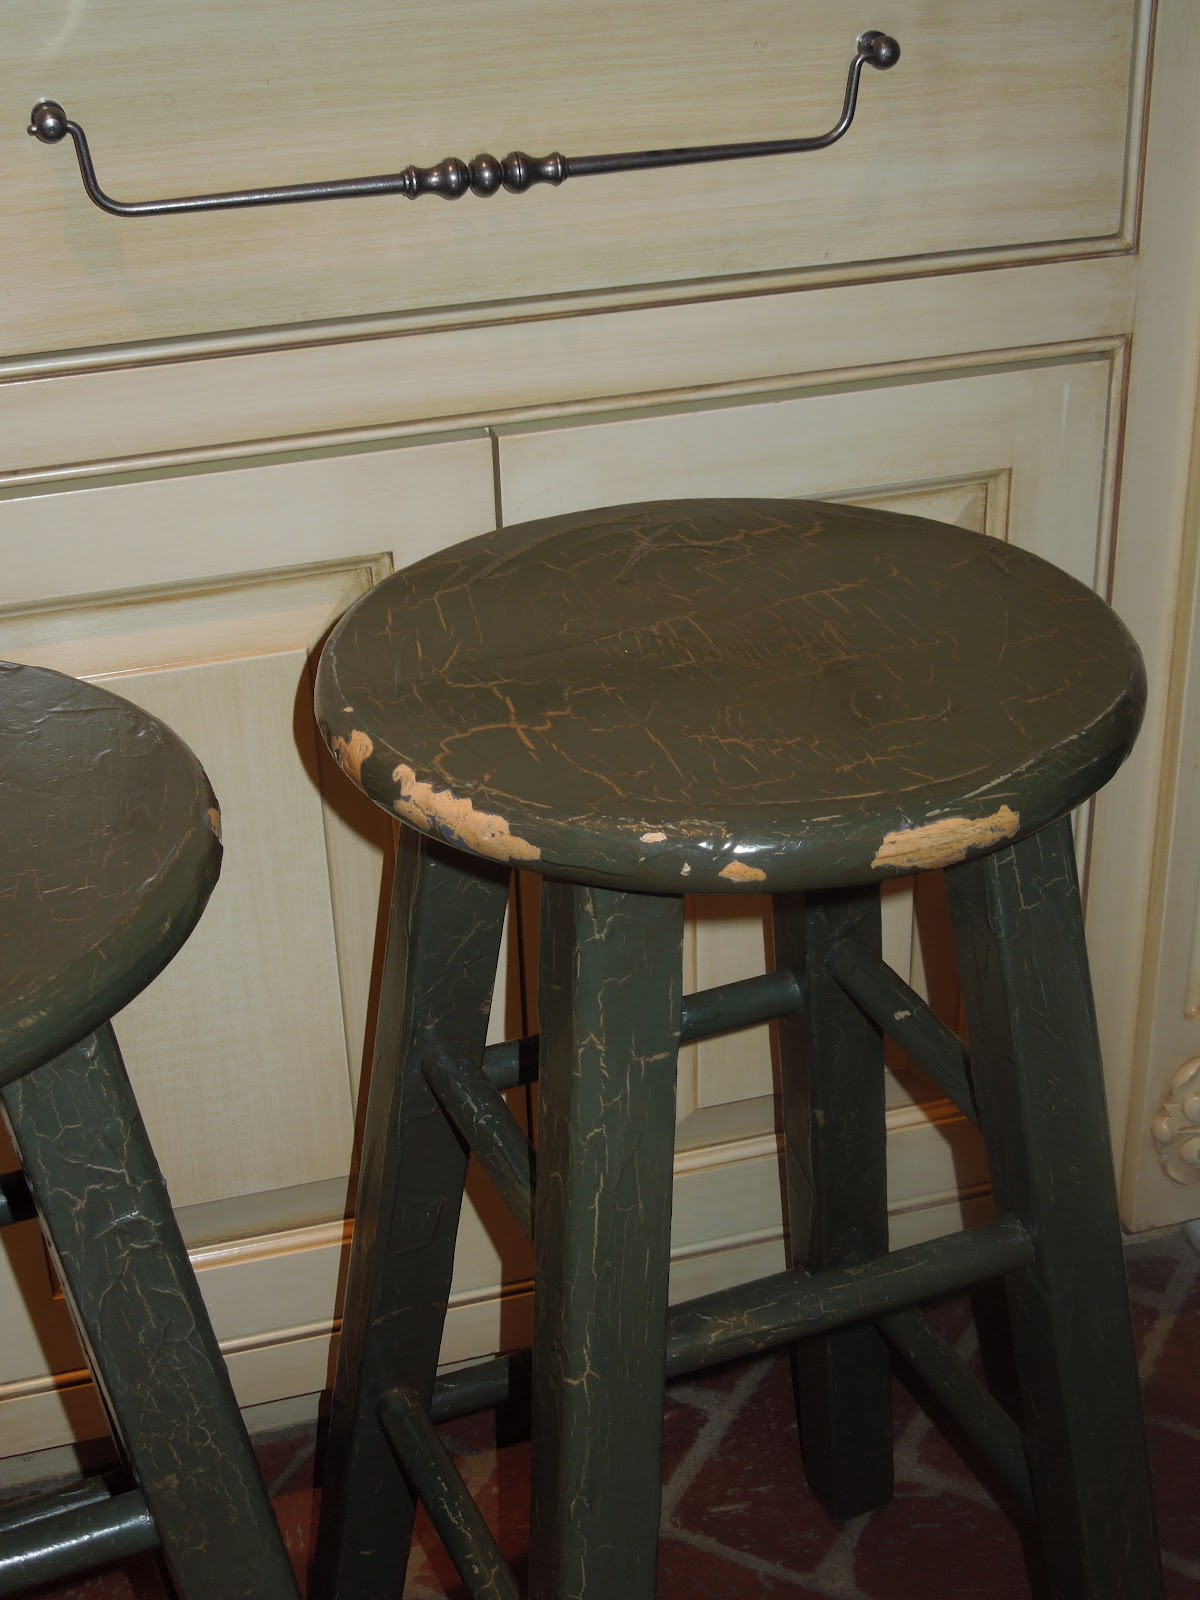 The French Tangerine Kitchen Stools